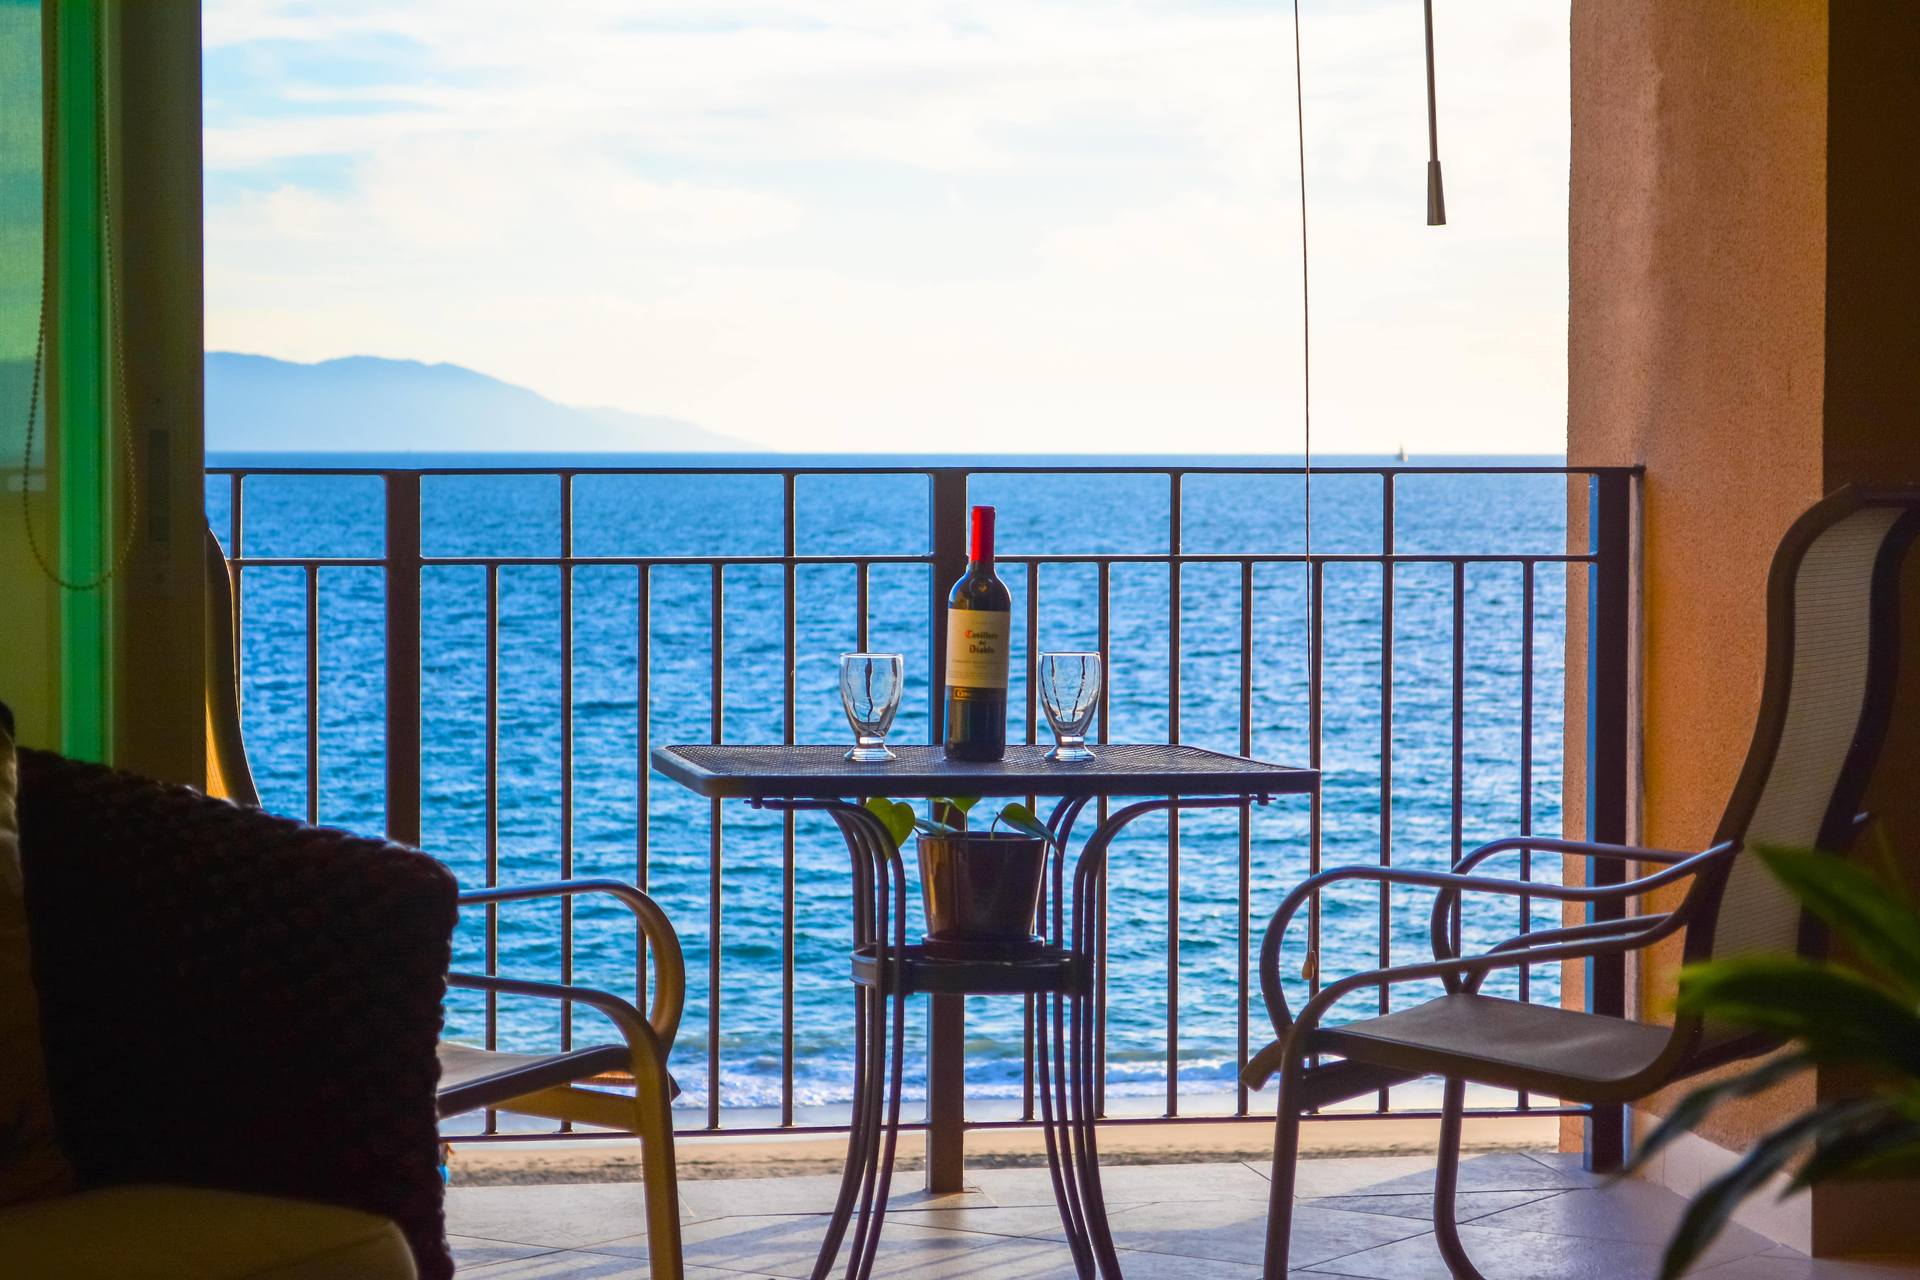 Terrace table and chairs with a bottle of wine overlooking the oceanfront view of this 1 bedroom vacation rental condo in Grand Venetian Puerto Vallarta